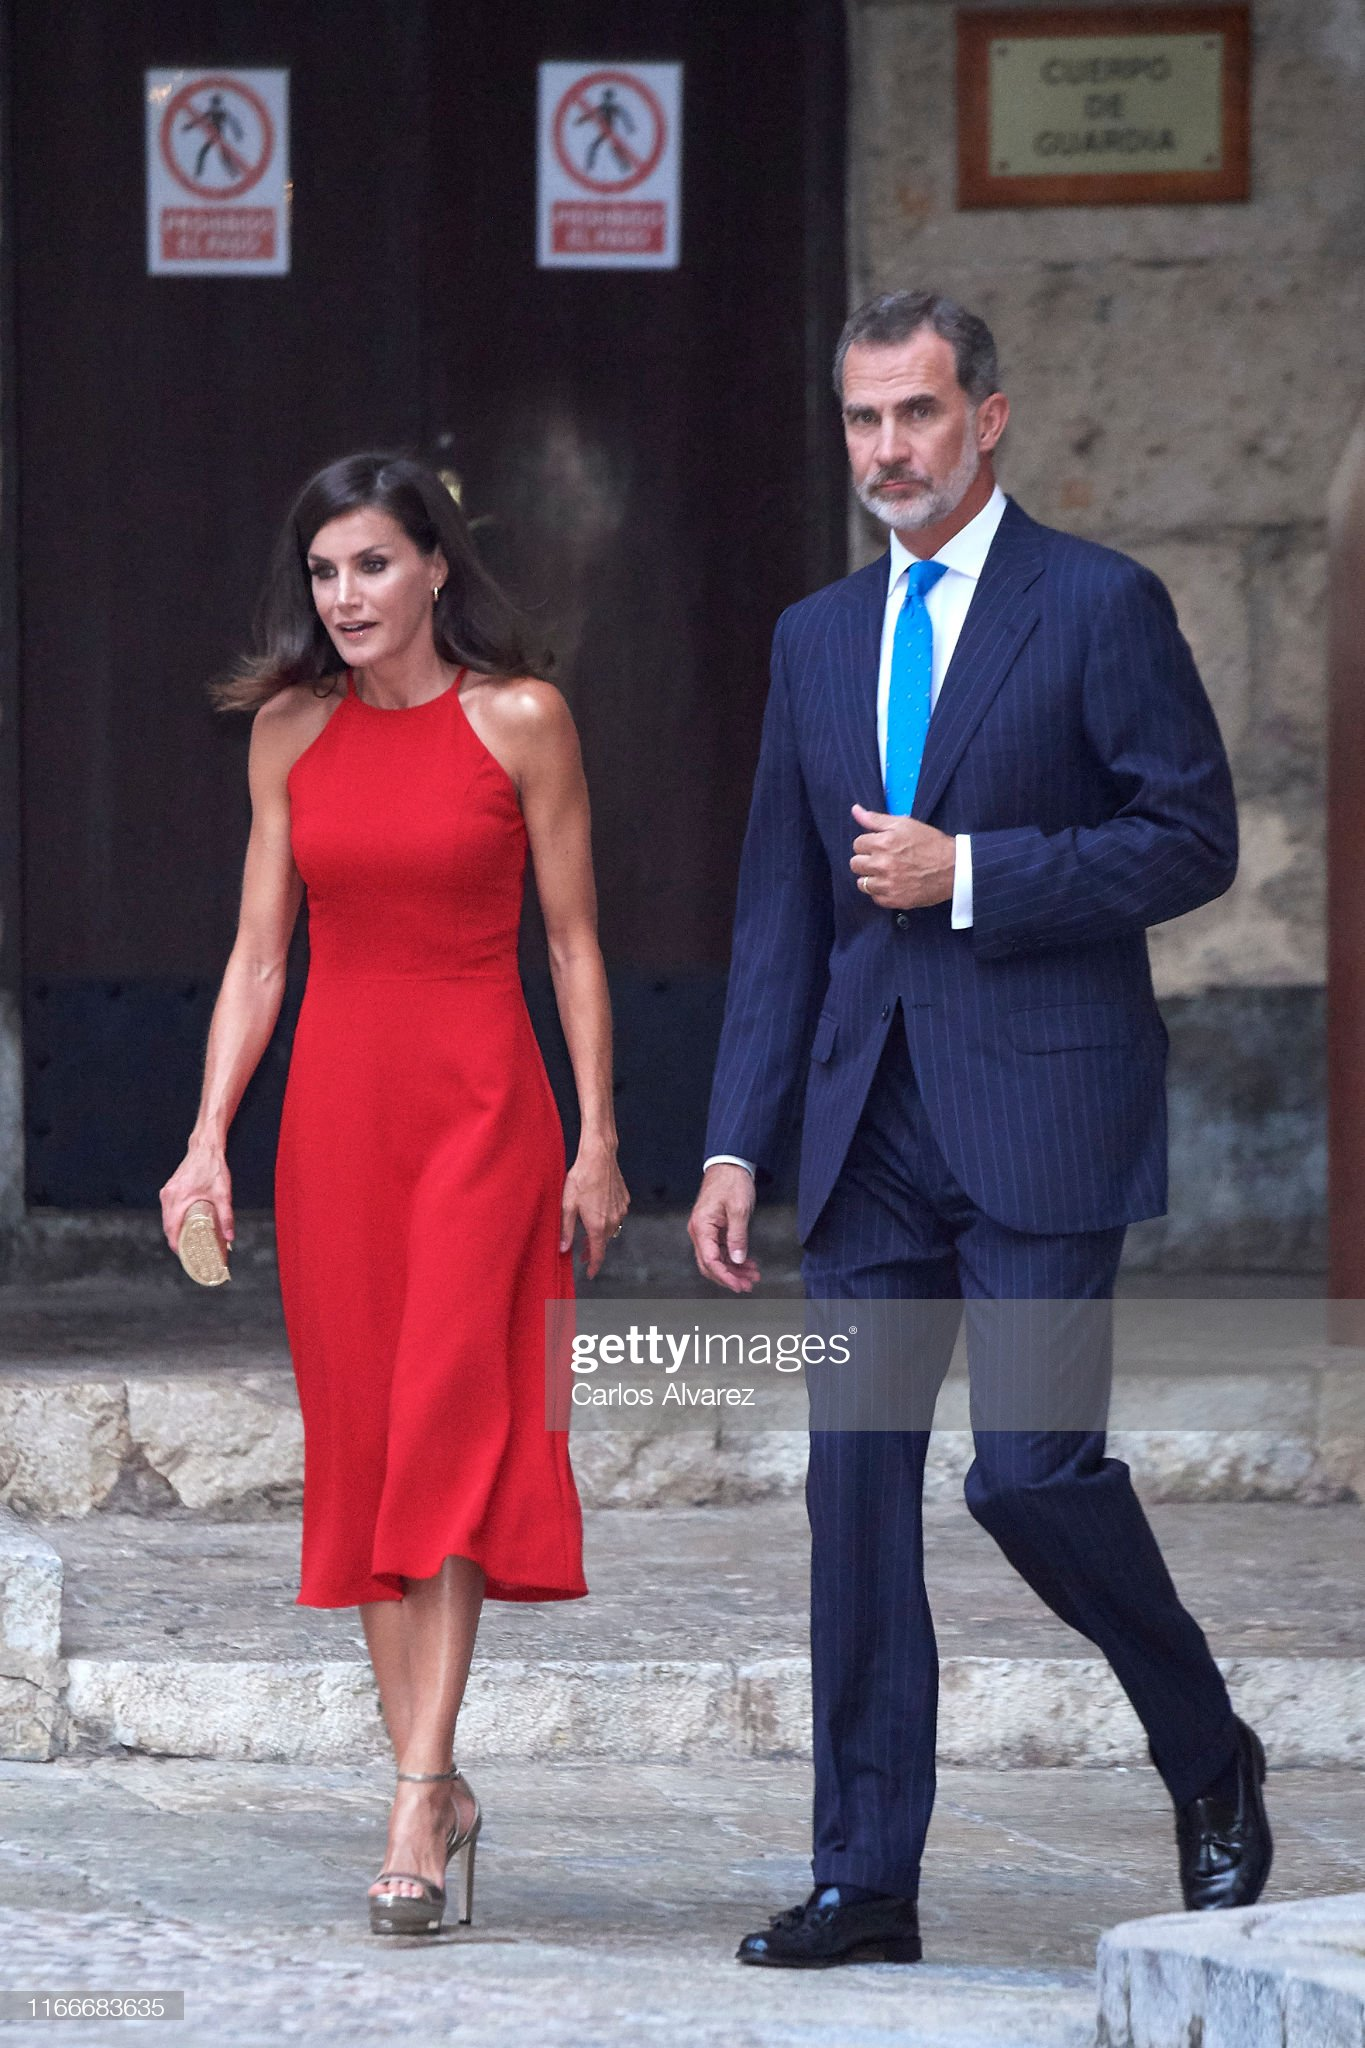 https://media.gettyimages.com/photos/king-felipe-vi-of-spain-and-queen-letizia-of-spain-host-a-dinner-for-picture-id1166683635?s=2048x2048